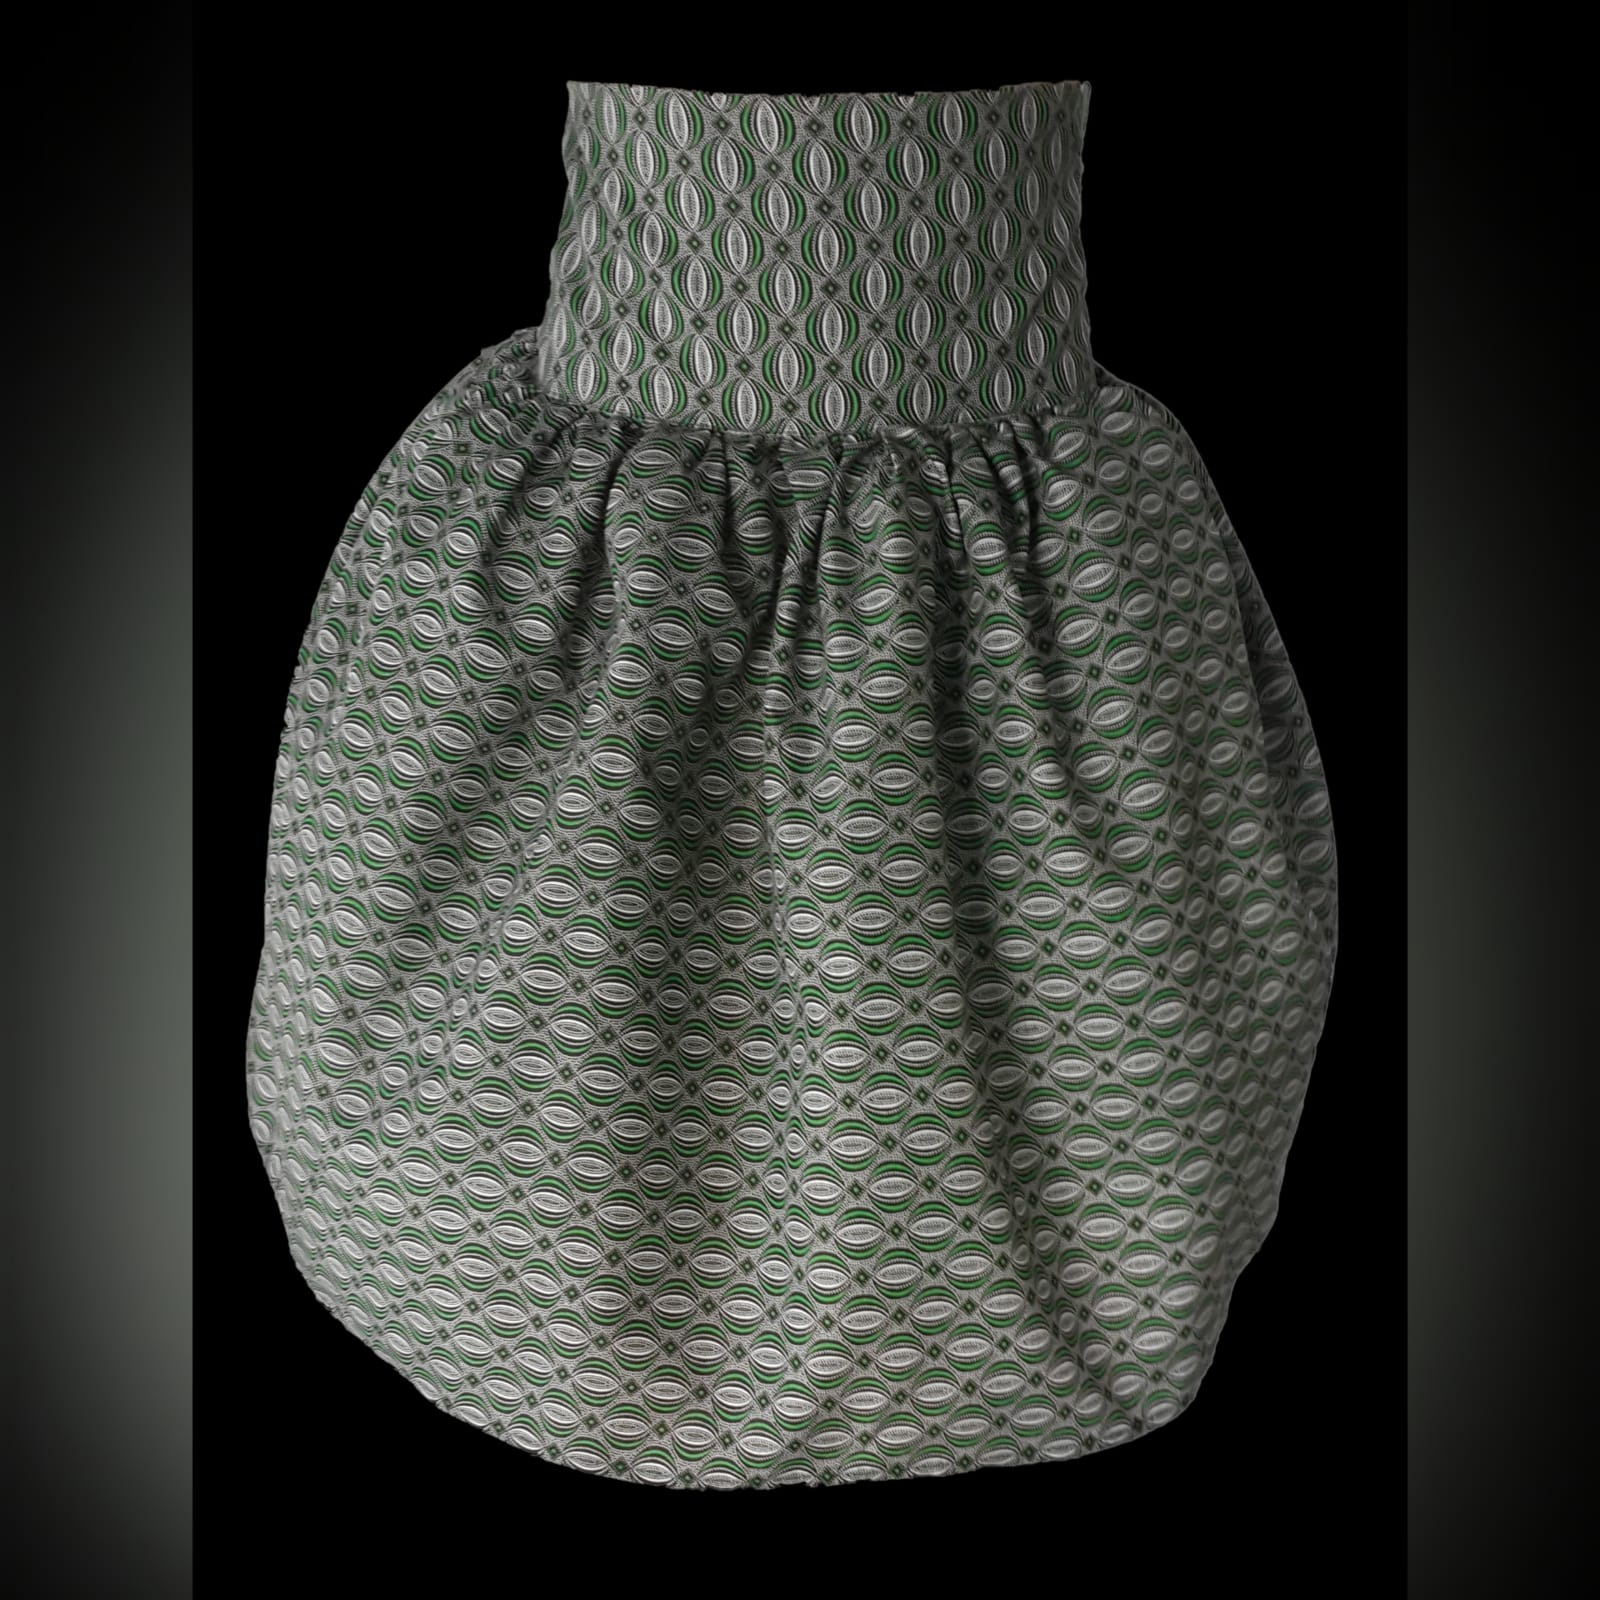 Green gathered high waist traditional skirt in xhosa print 4 a green patterned african gathered high waisted traditional skirt.